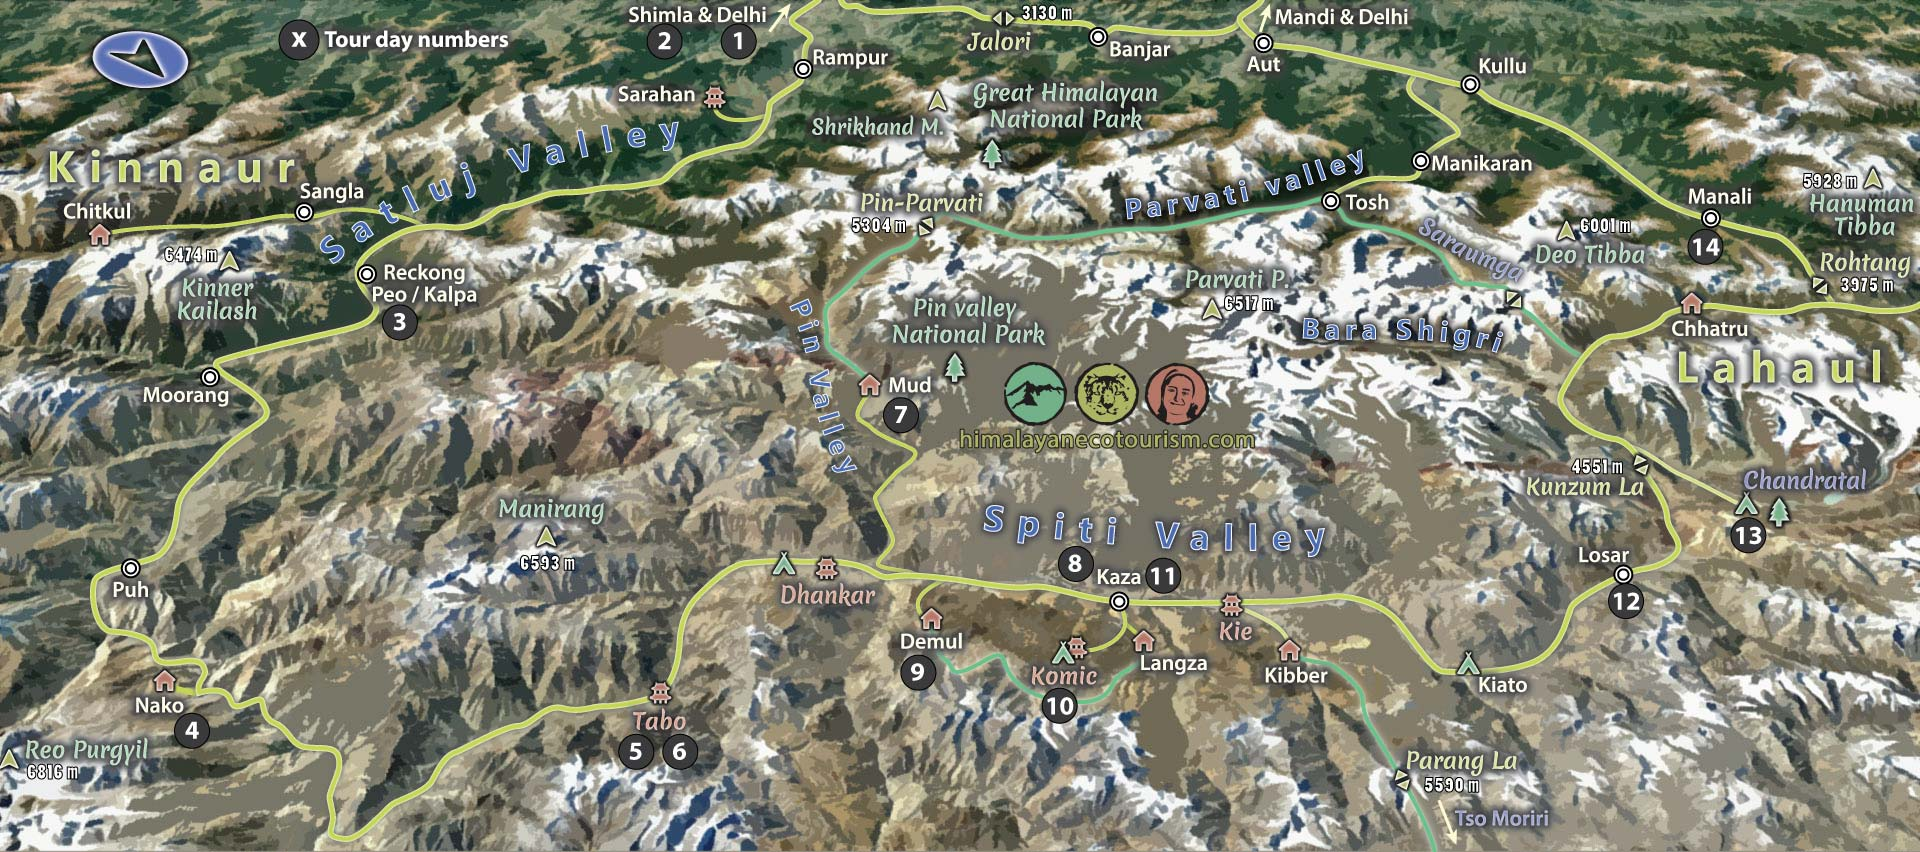 Spiti valley tour map